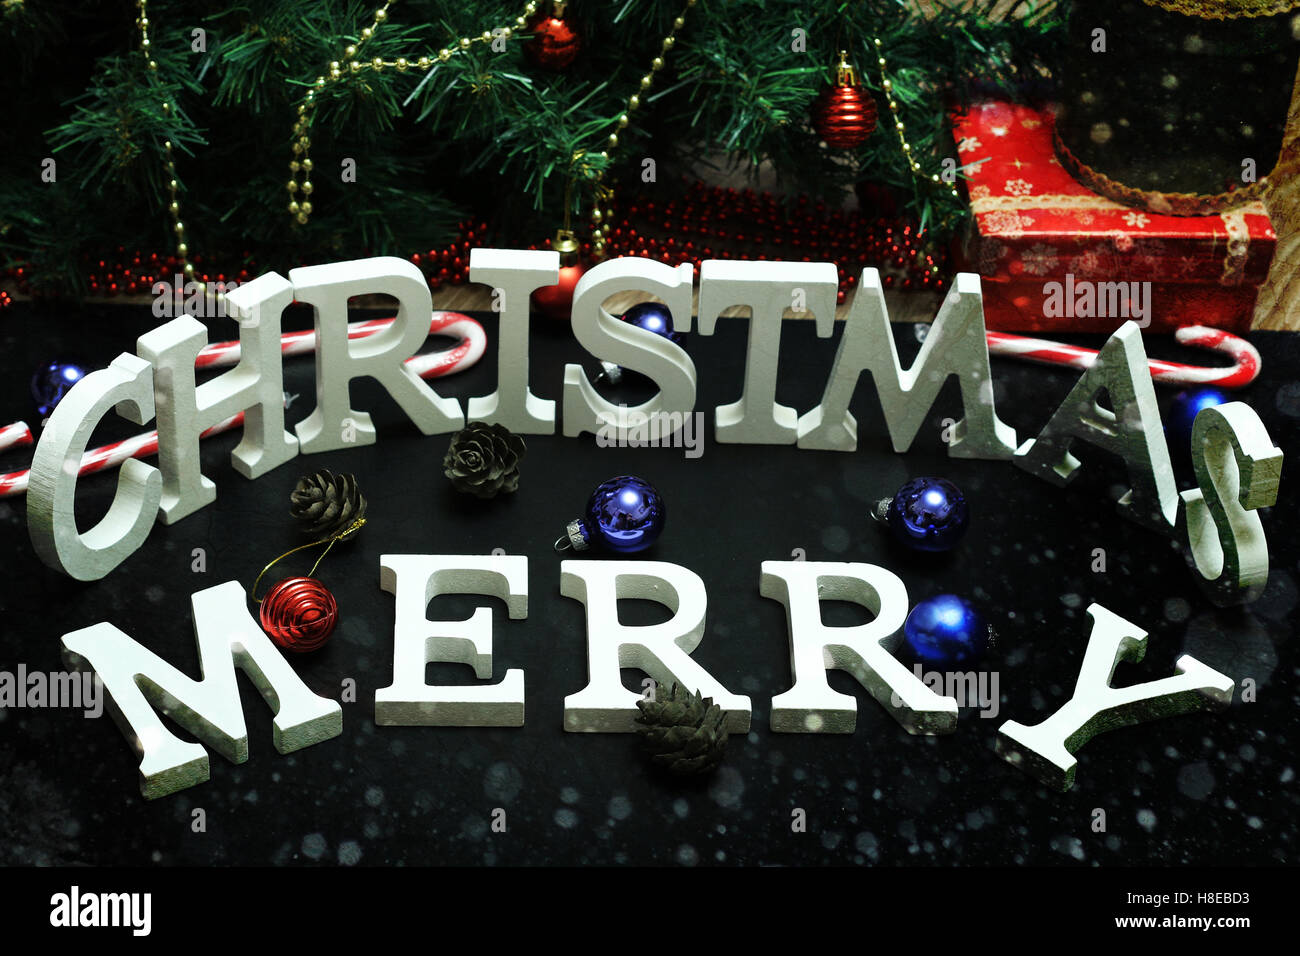 christmas letter decoration stock image - Christmas Letter Decorations